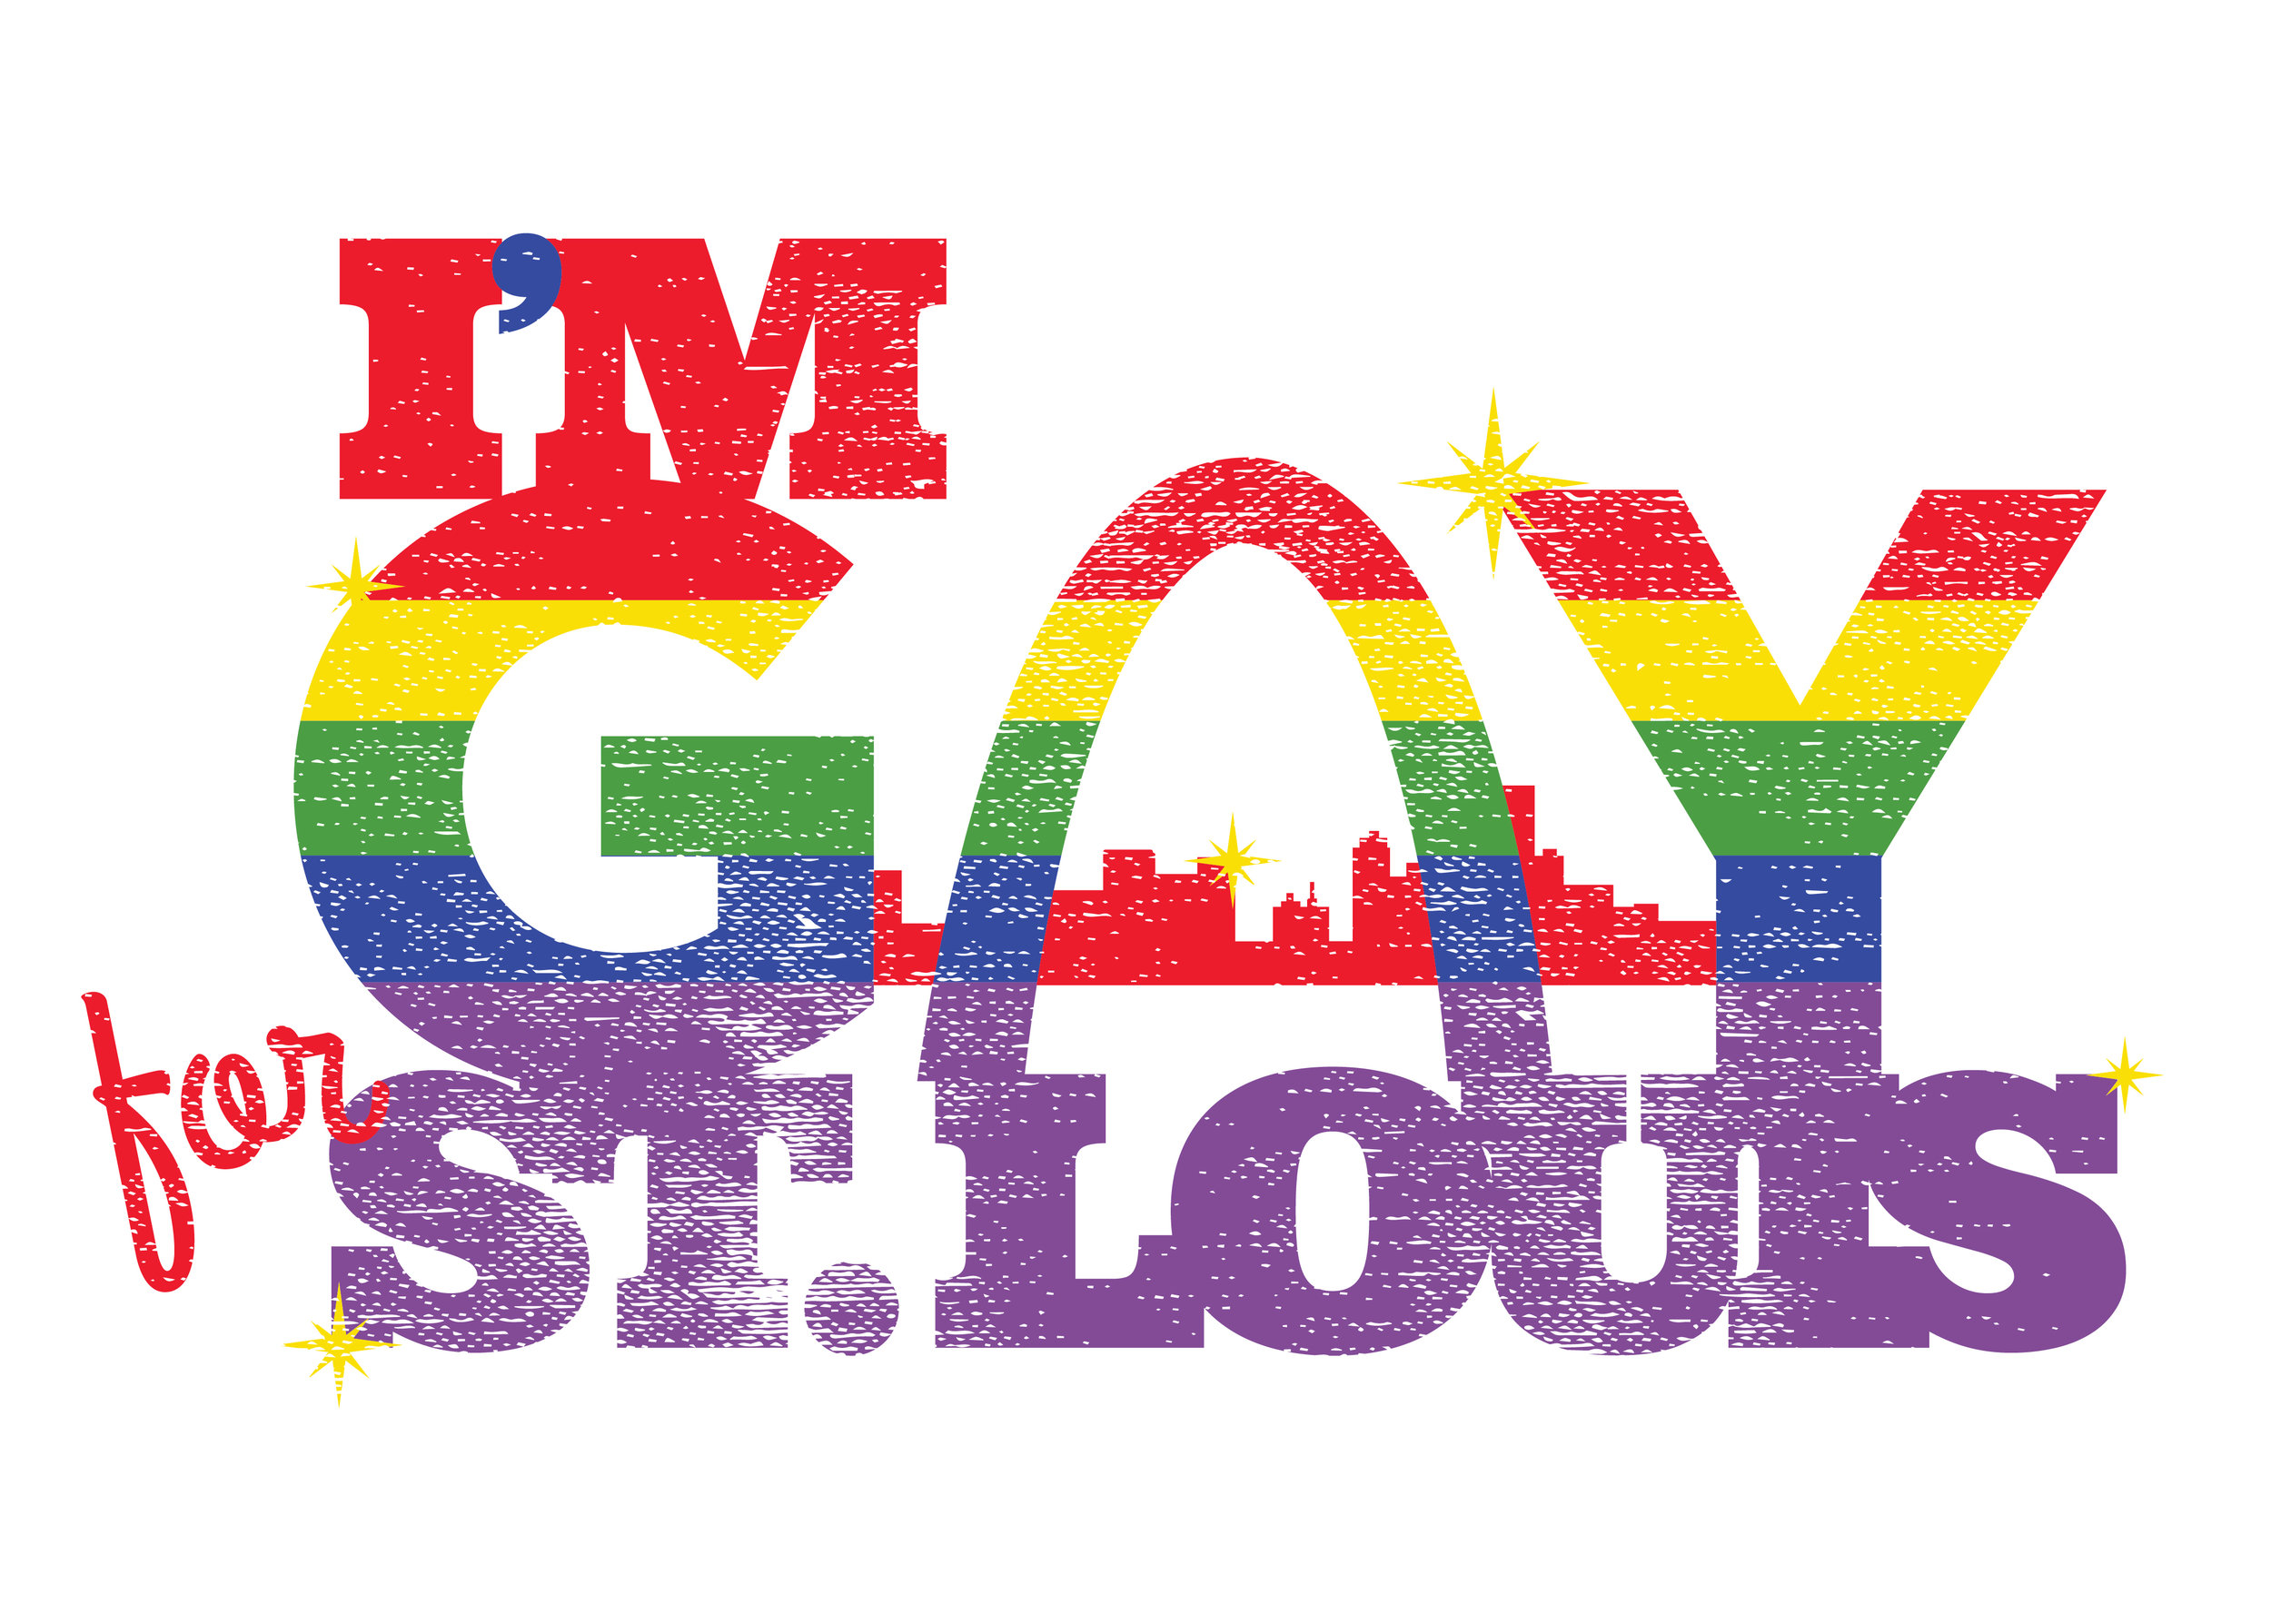 gay for st louis final-01.jpg